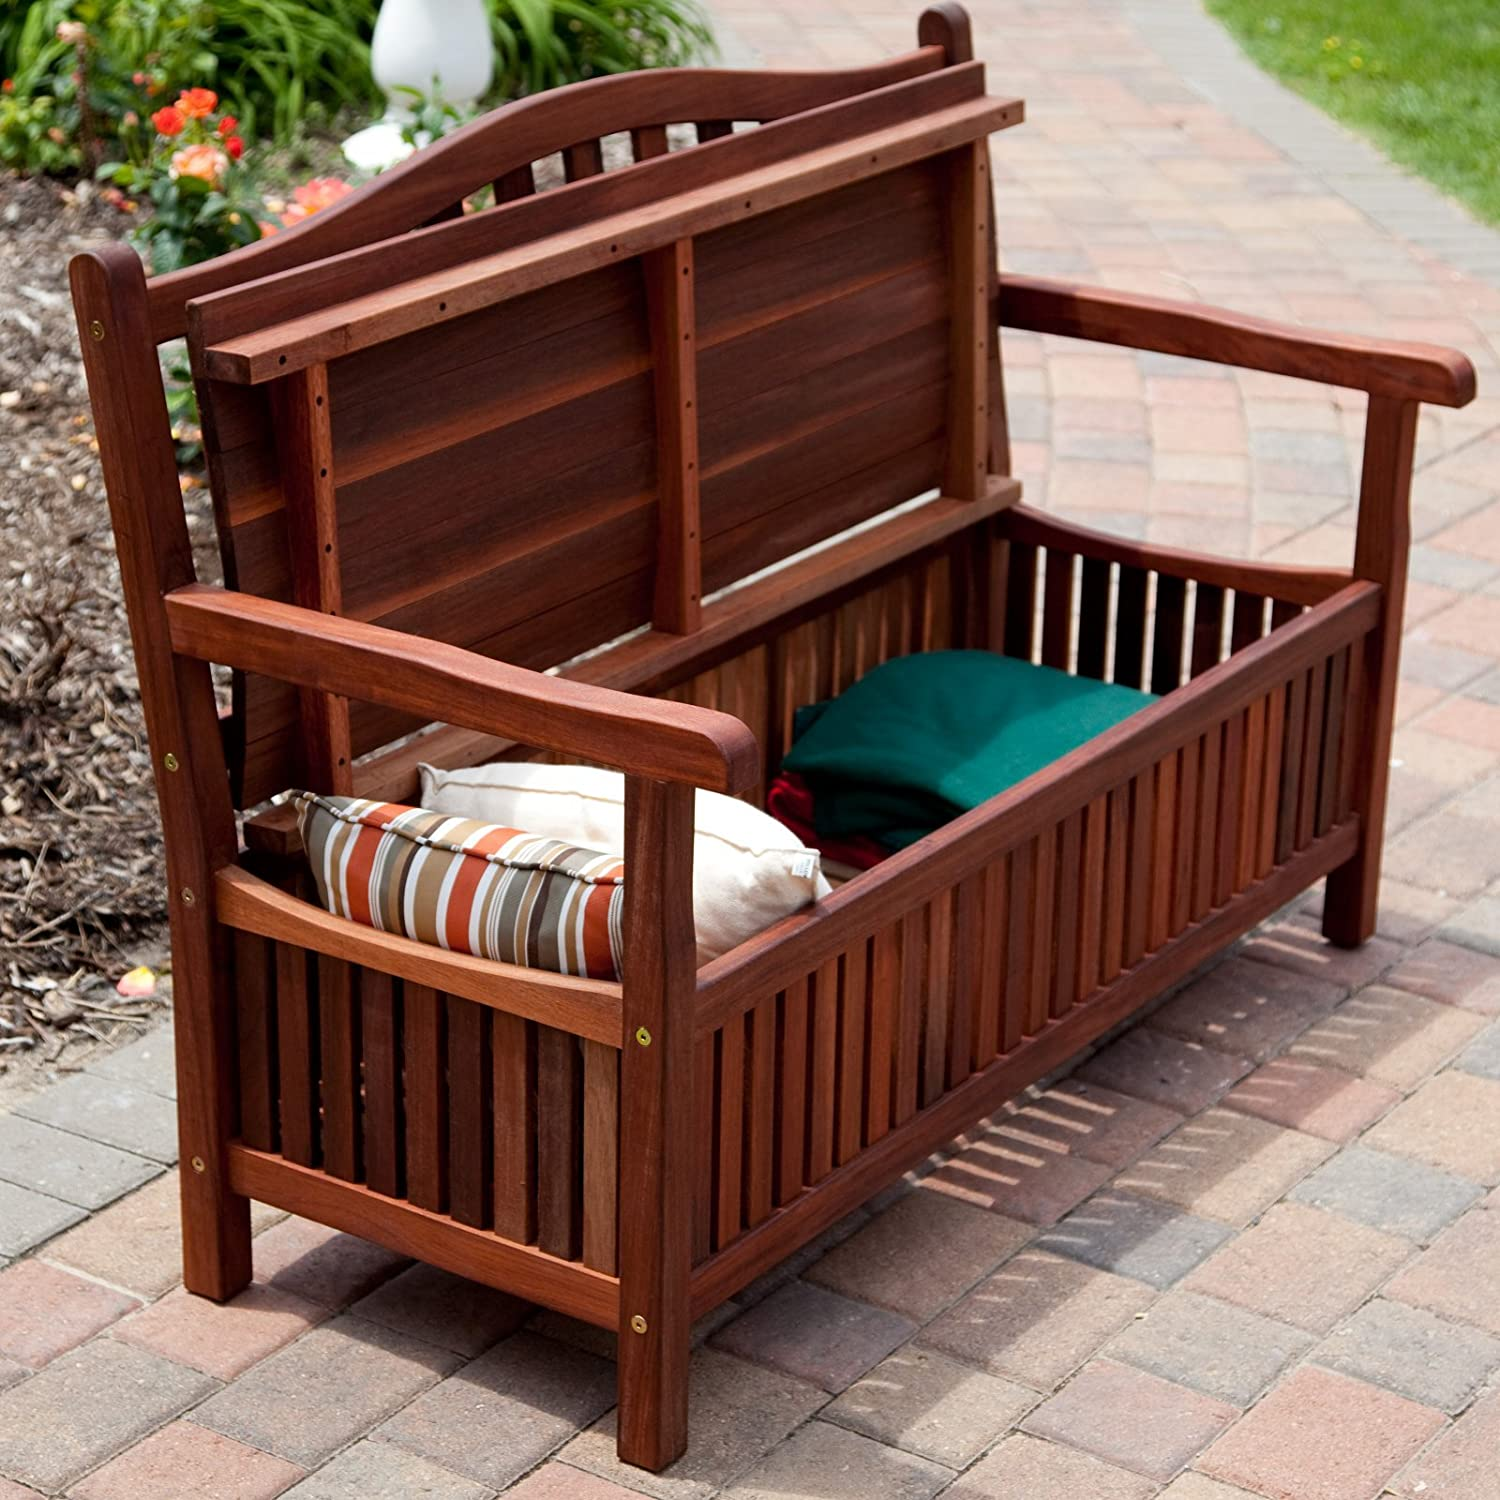 Outdoor Wooden Bench Best Outdoor Wood Stain Ideas On